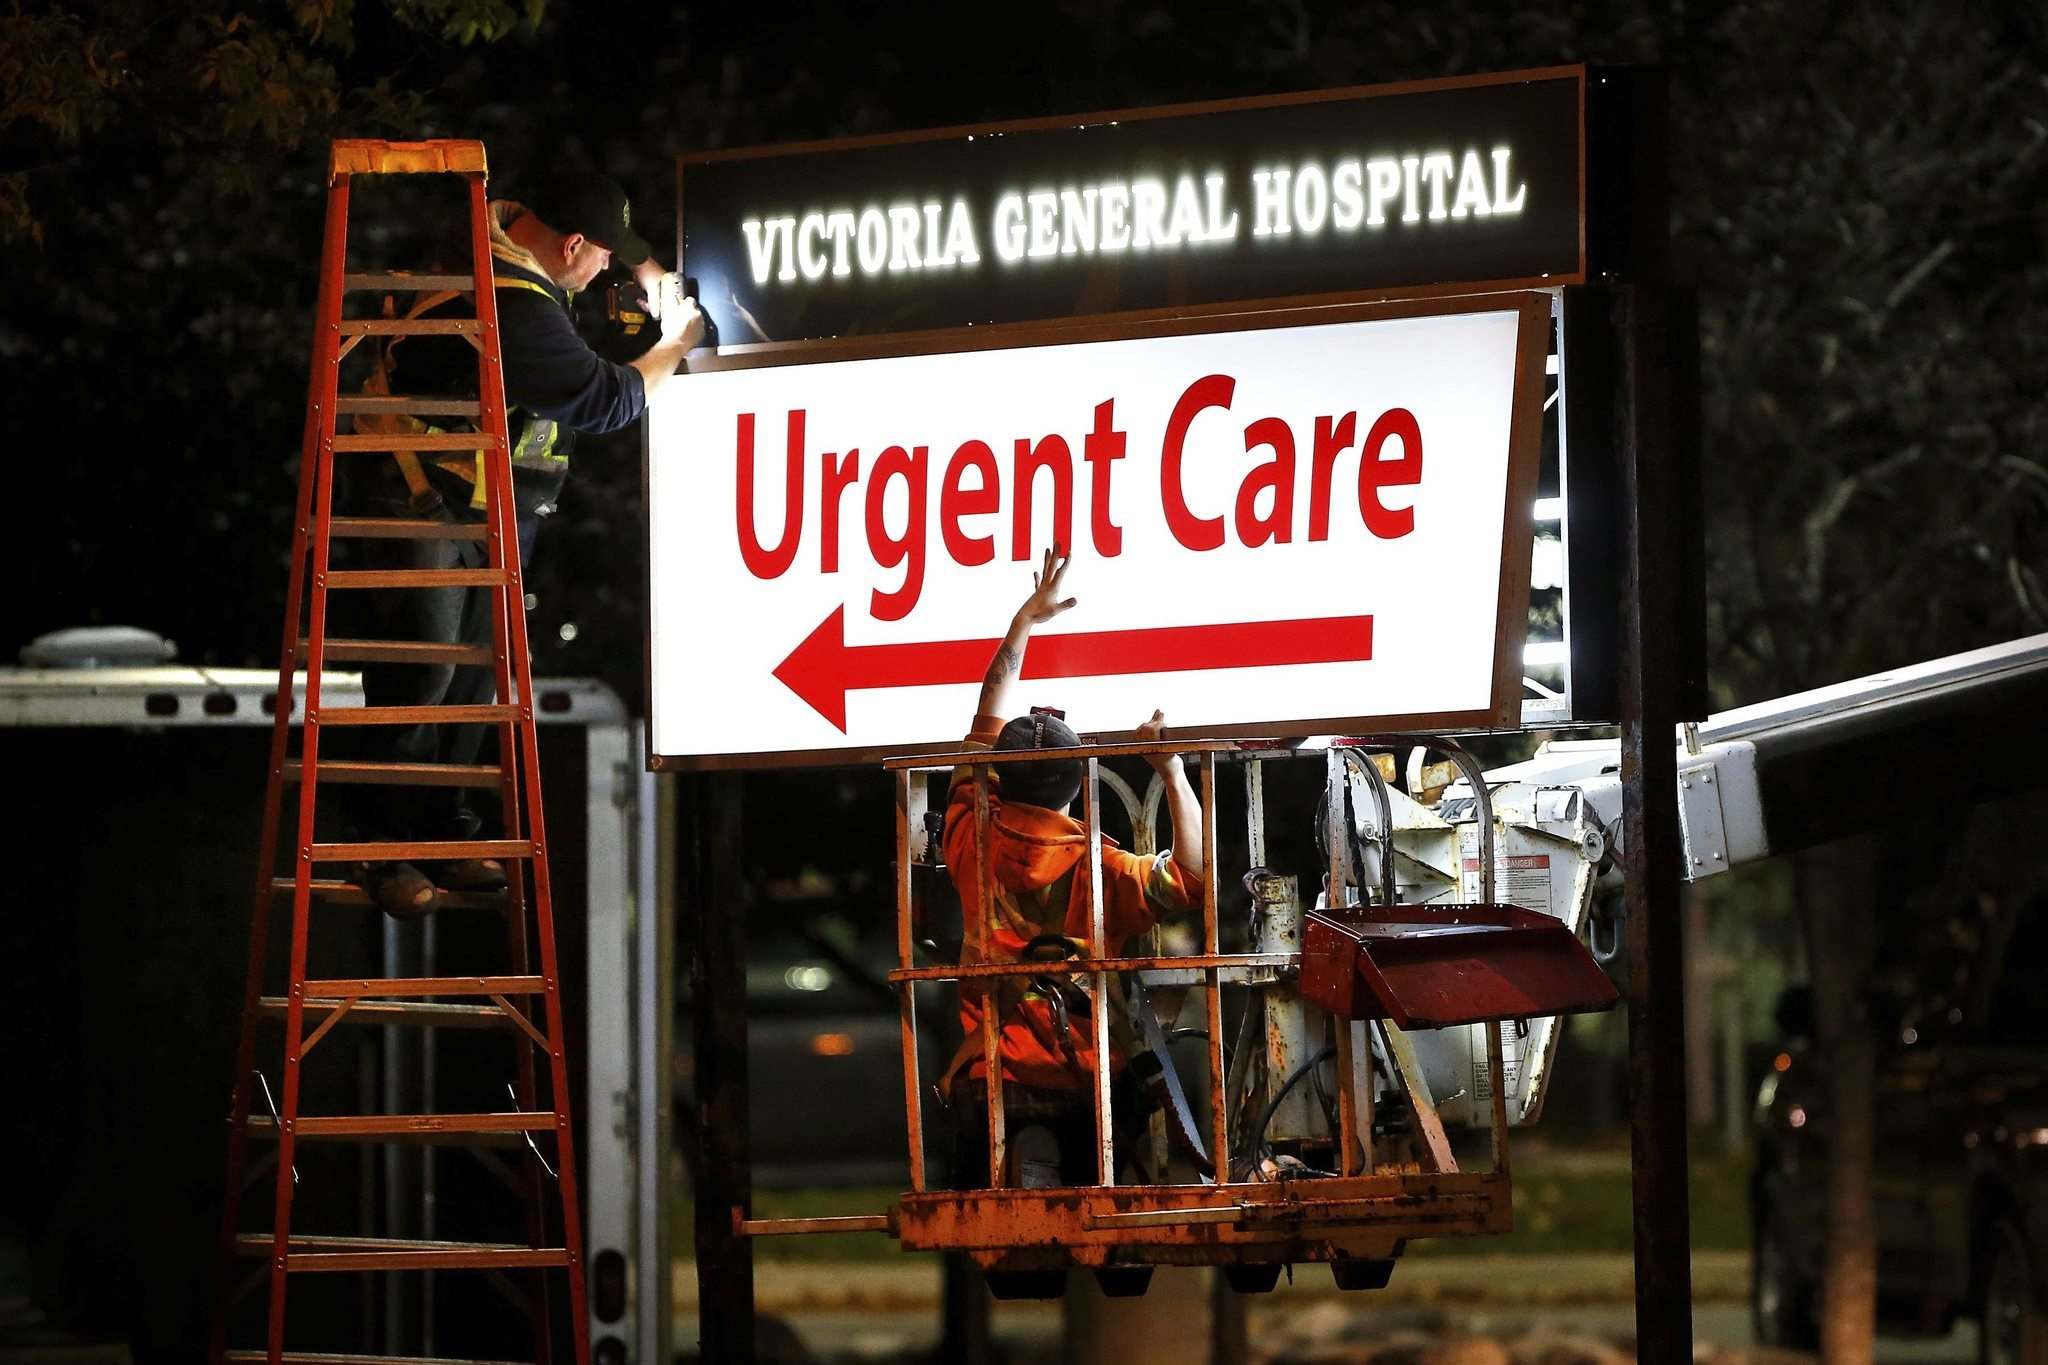 JOHN WOODS / WINNIPEG FREE PRESS FILES</p><p>A sign crew installs Urgent Care signage at Victoria General Hospital in 2017.</p>